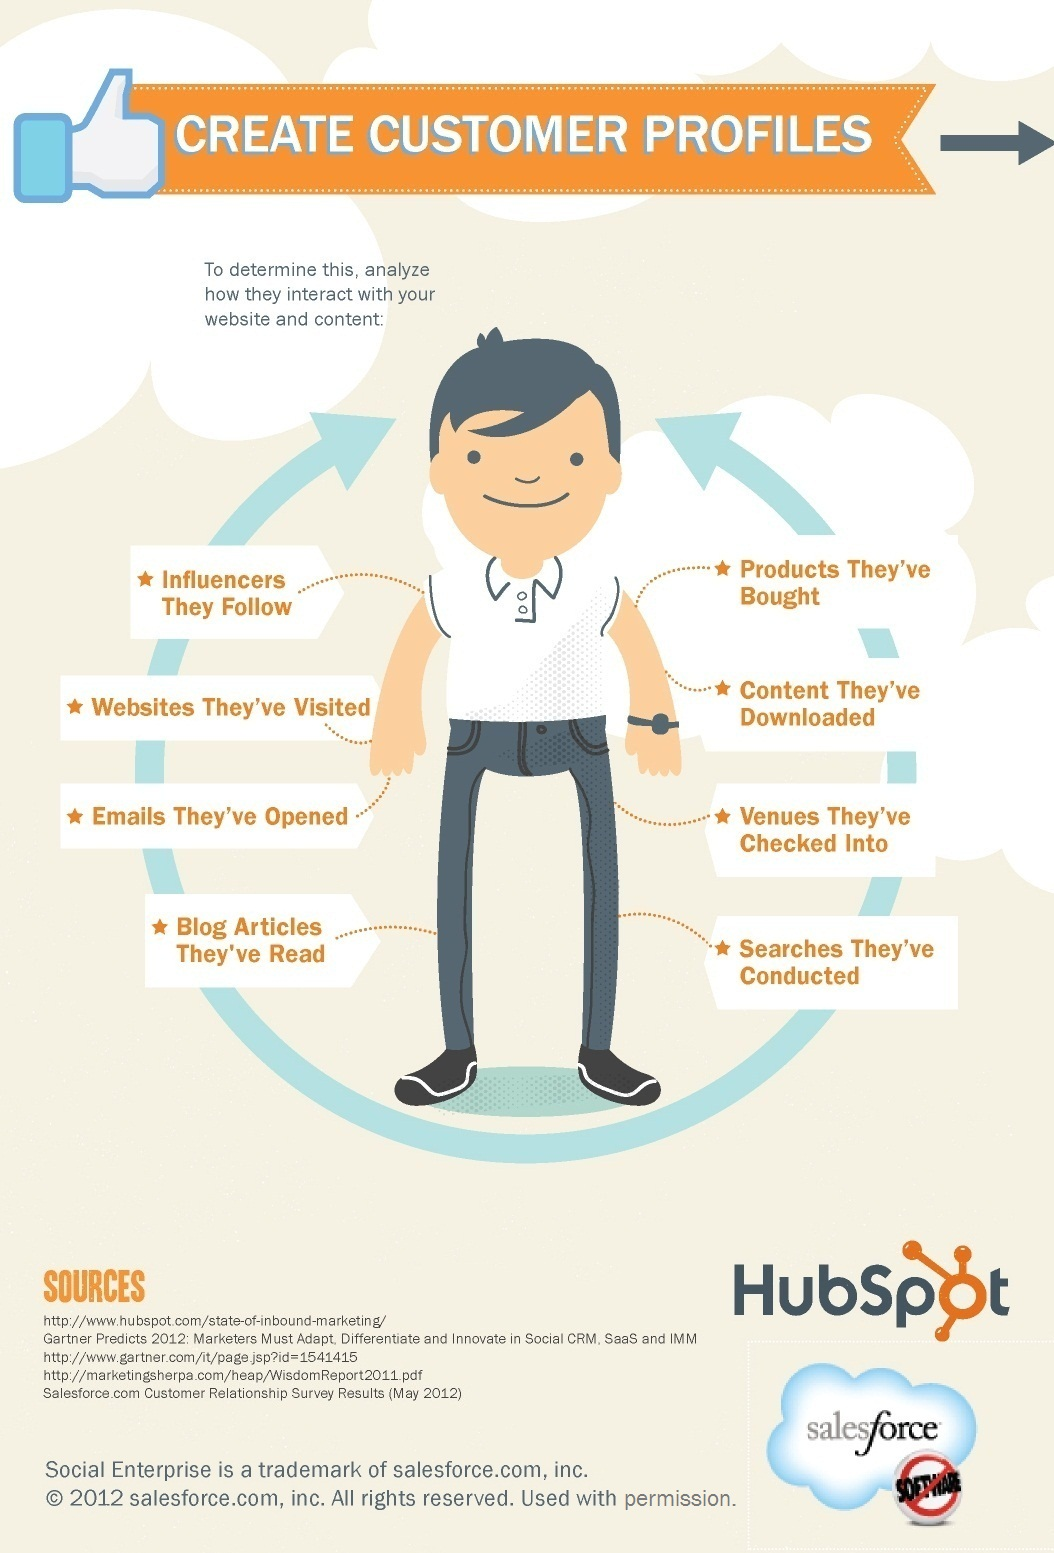 sfdc-hubspot-infographic-part2-final